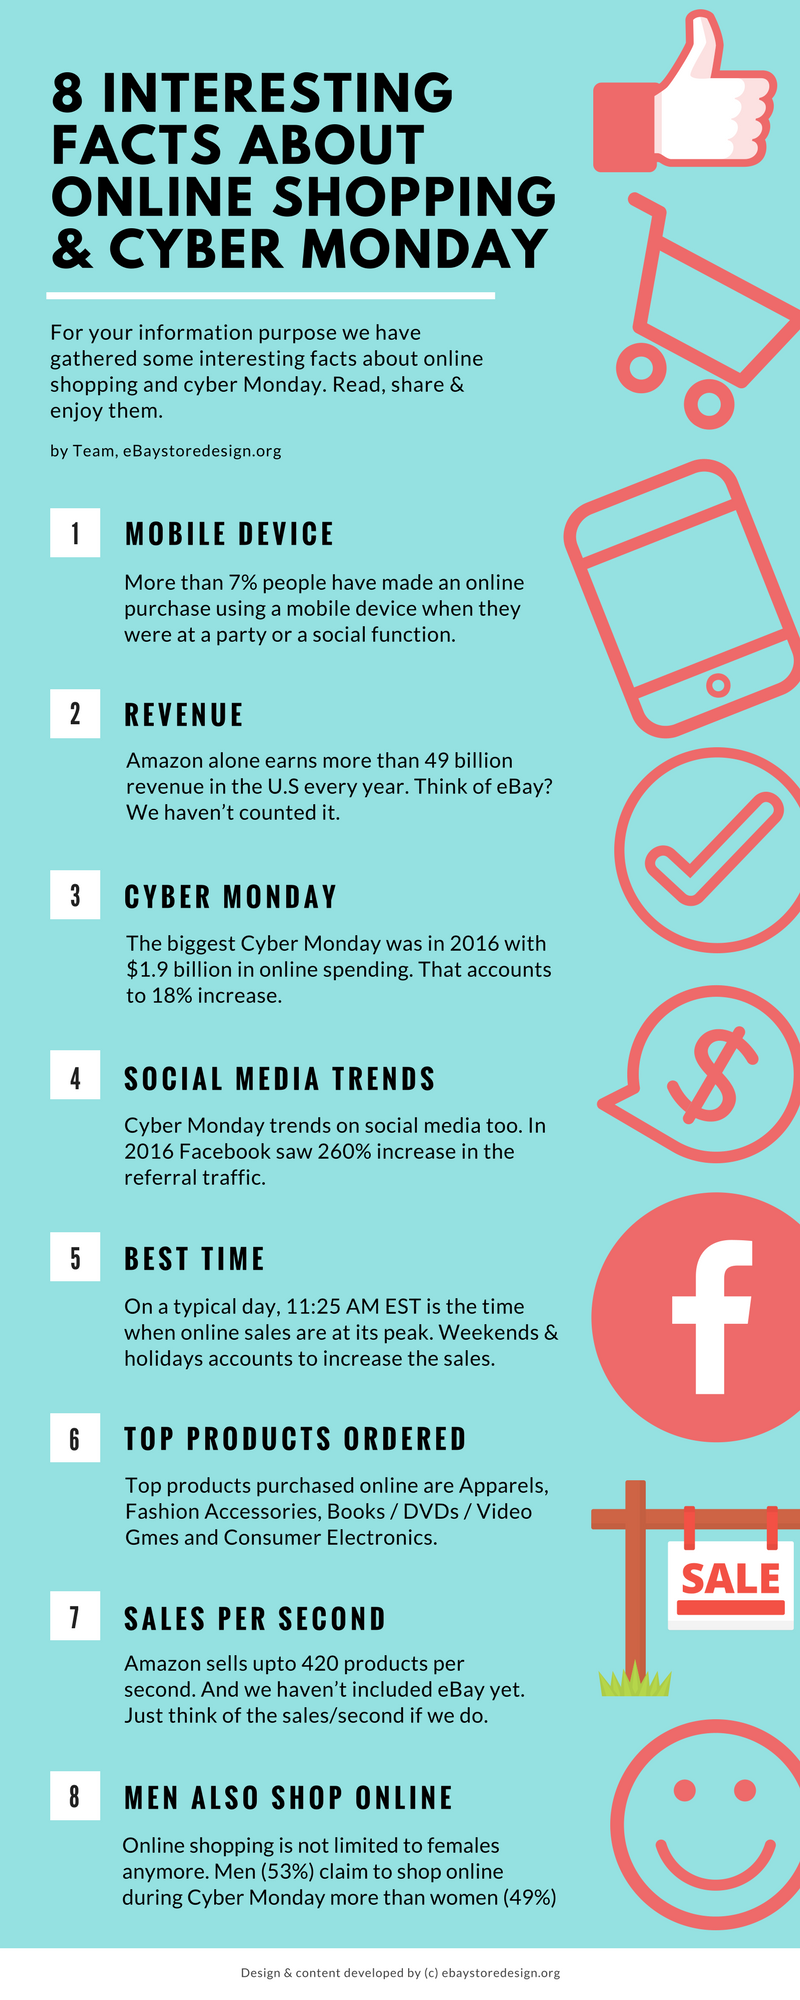 8 interesting facts about online shopping & cyber monday